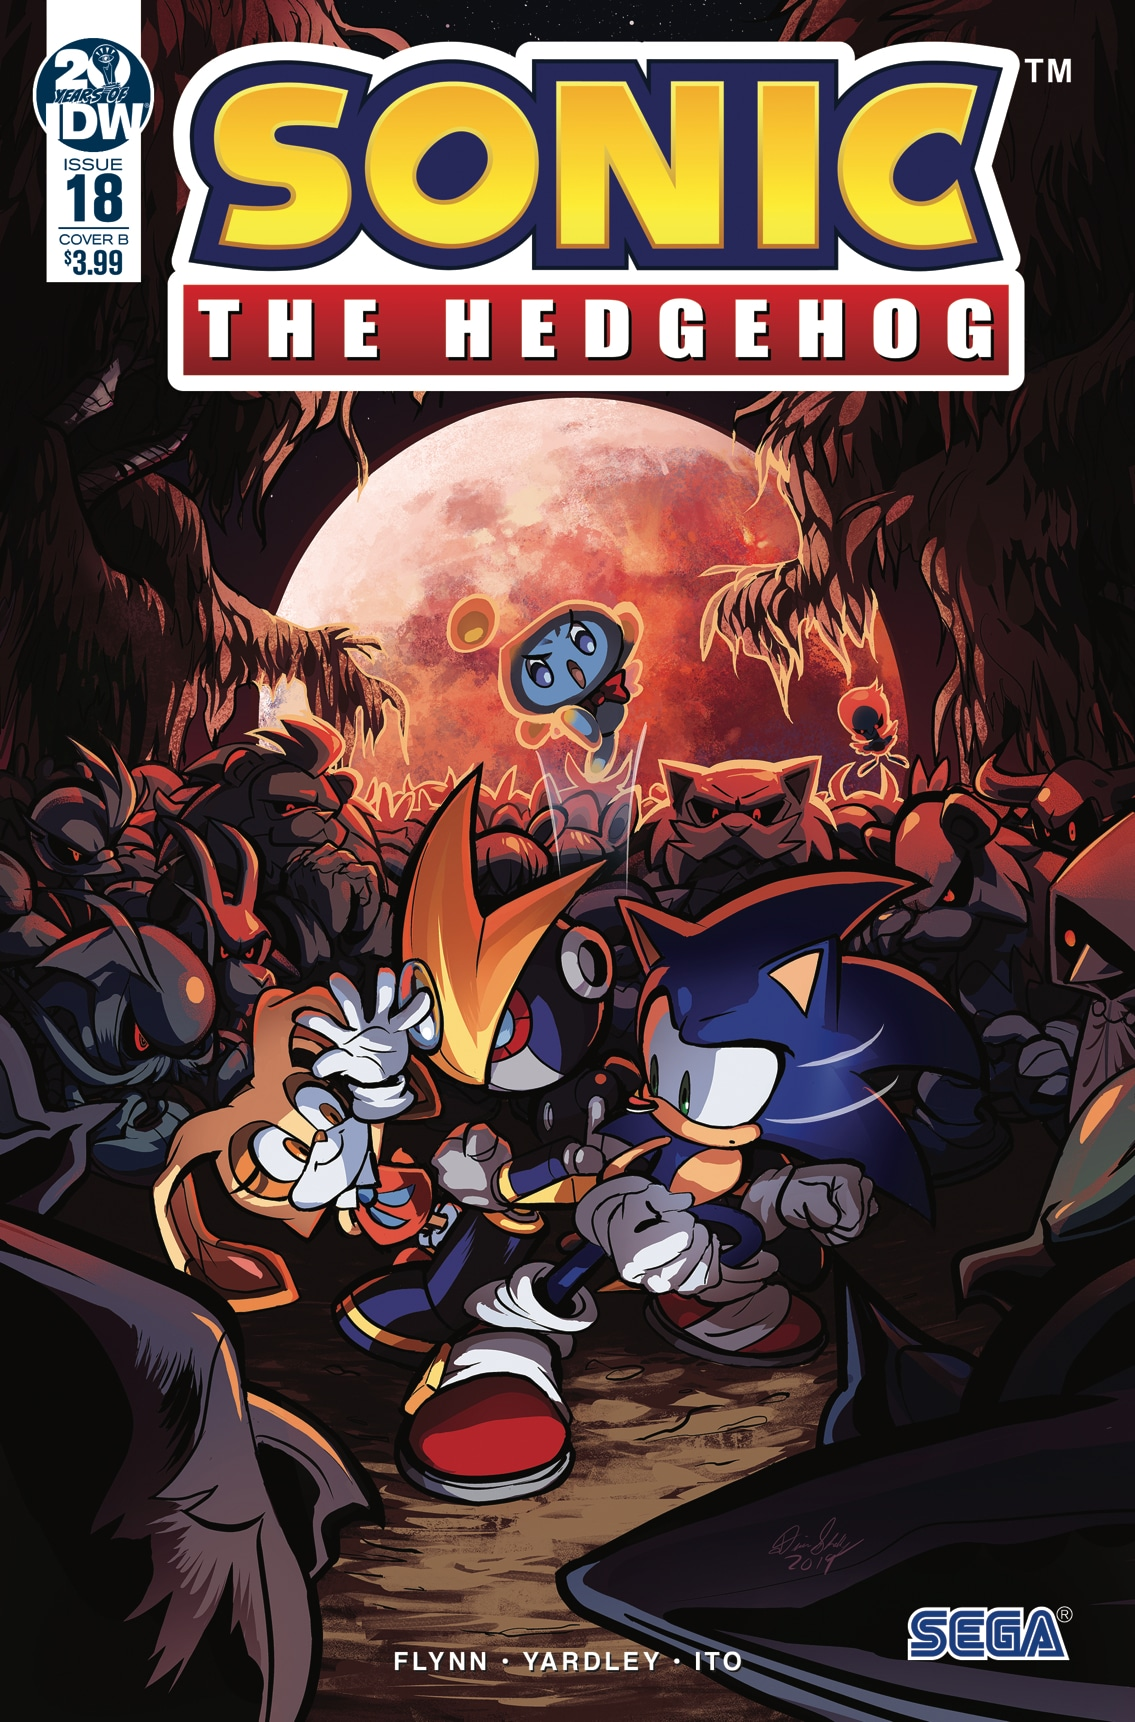 Idw Sonic The Hedgehog Issue 18 Sonic News Network Fandom